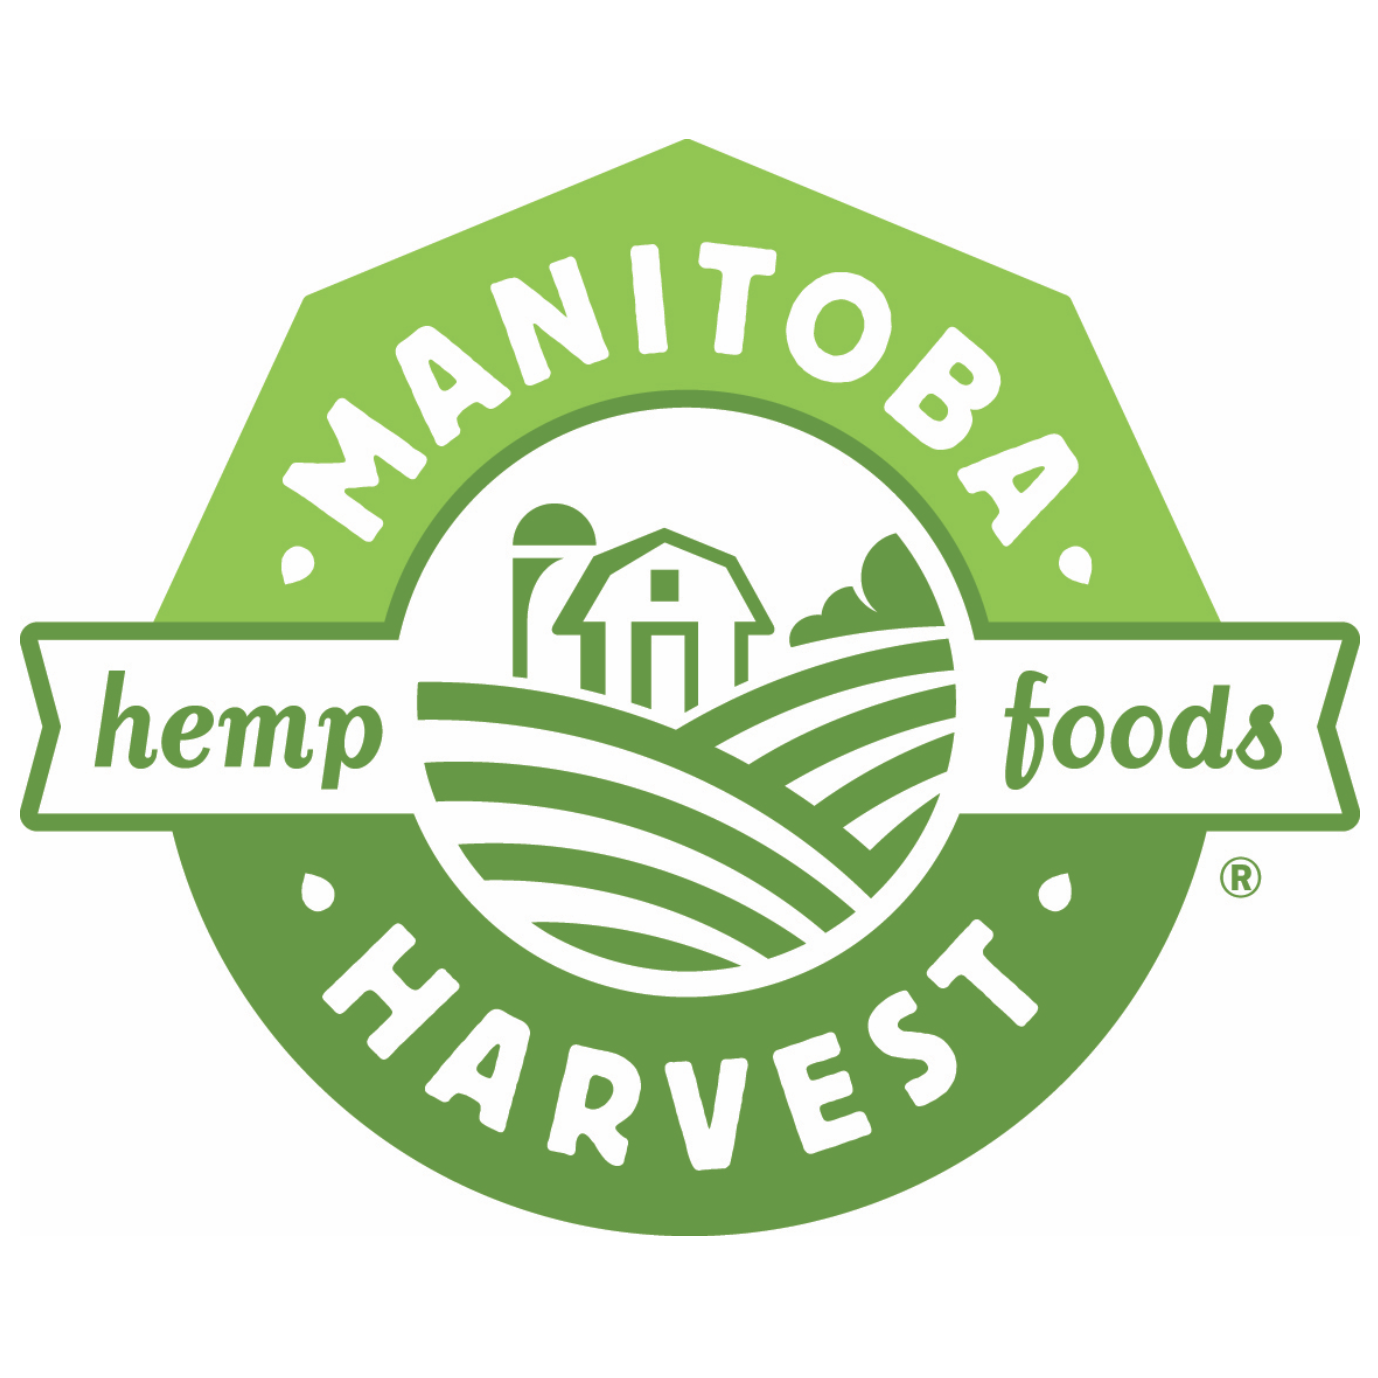 Fresh Hemp Foods - Manitoba Harvest logo - Certified Paleo, KETO Certified by the Paleo Foundation